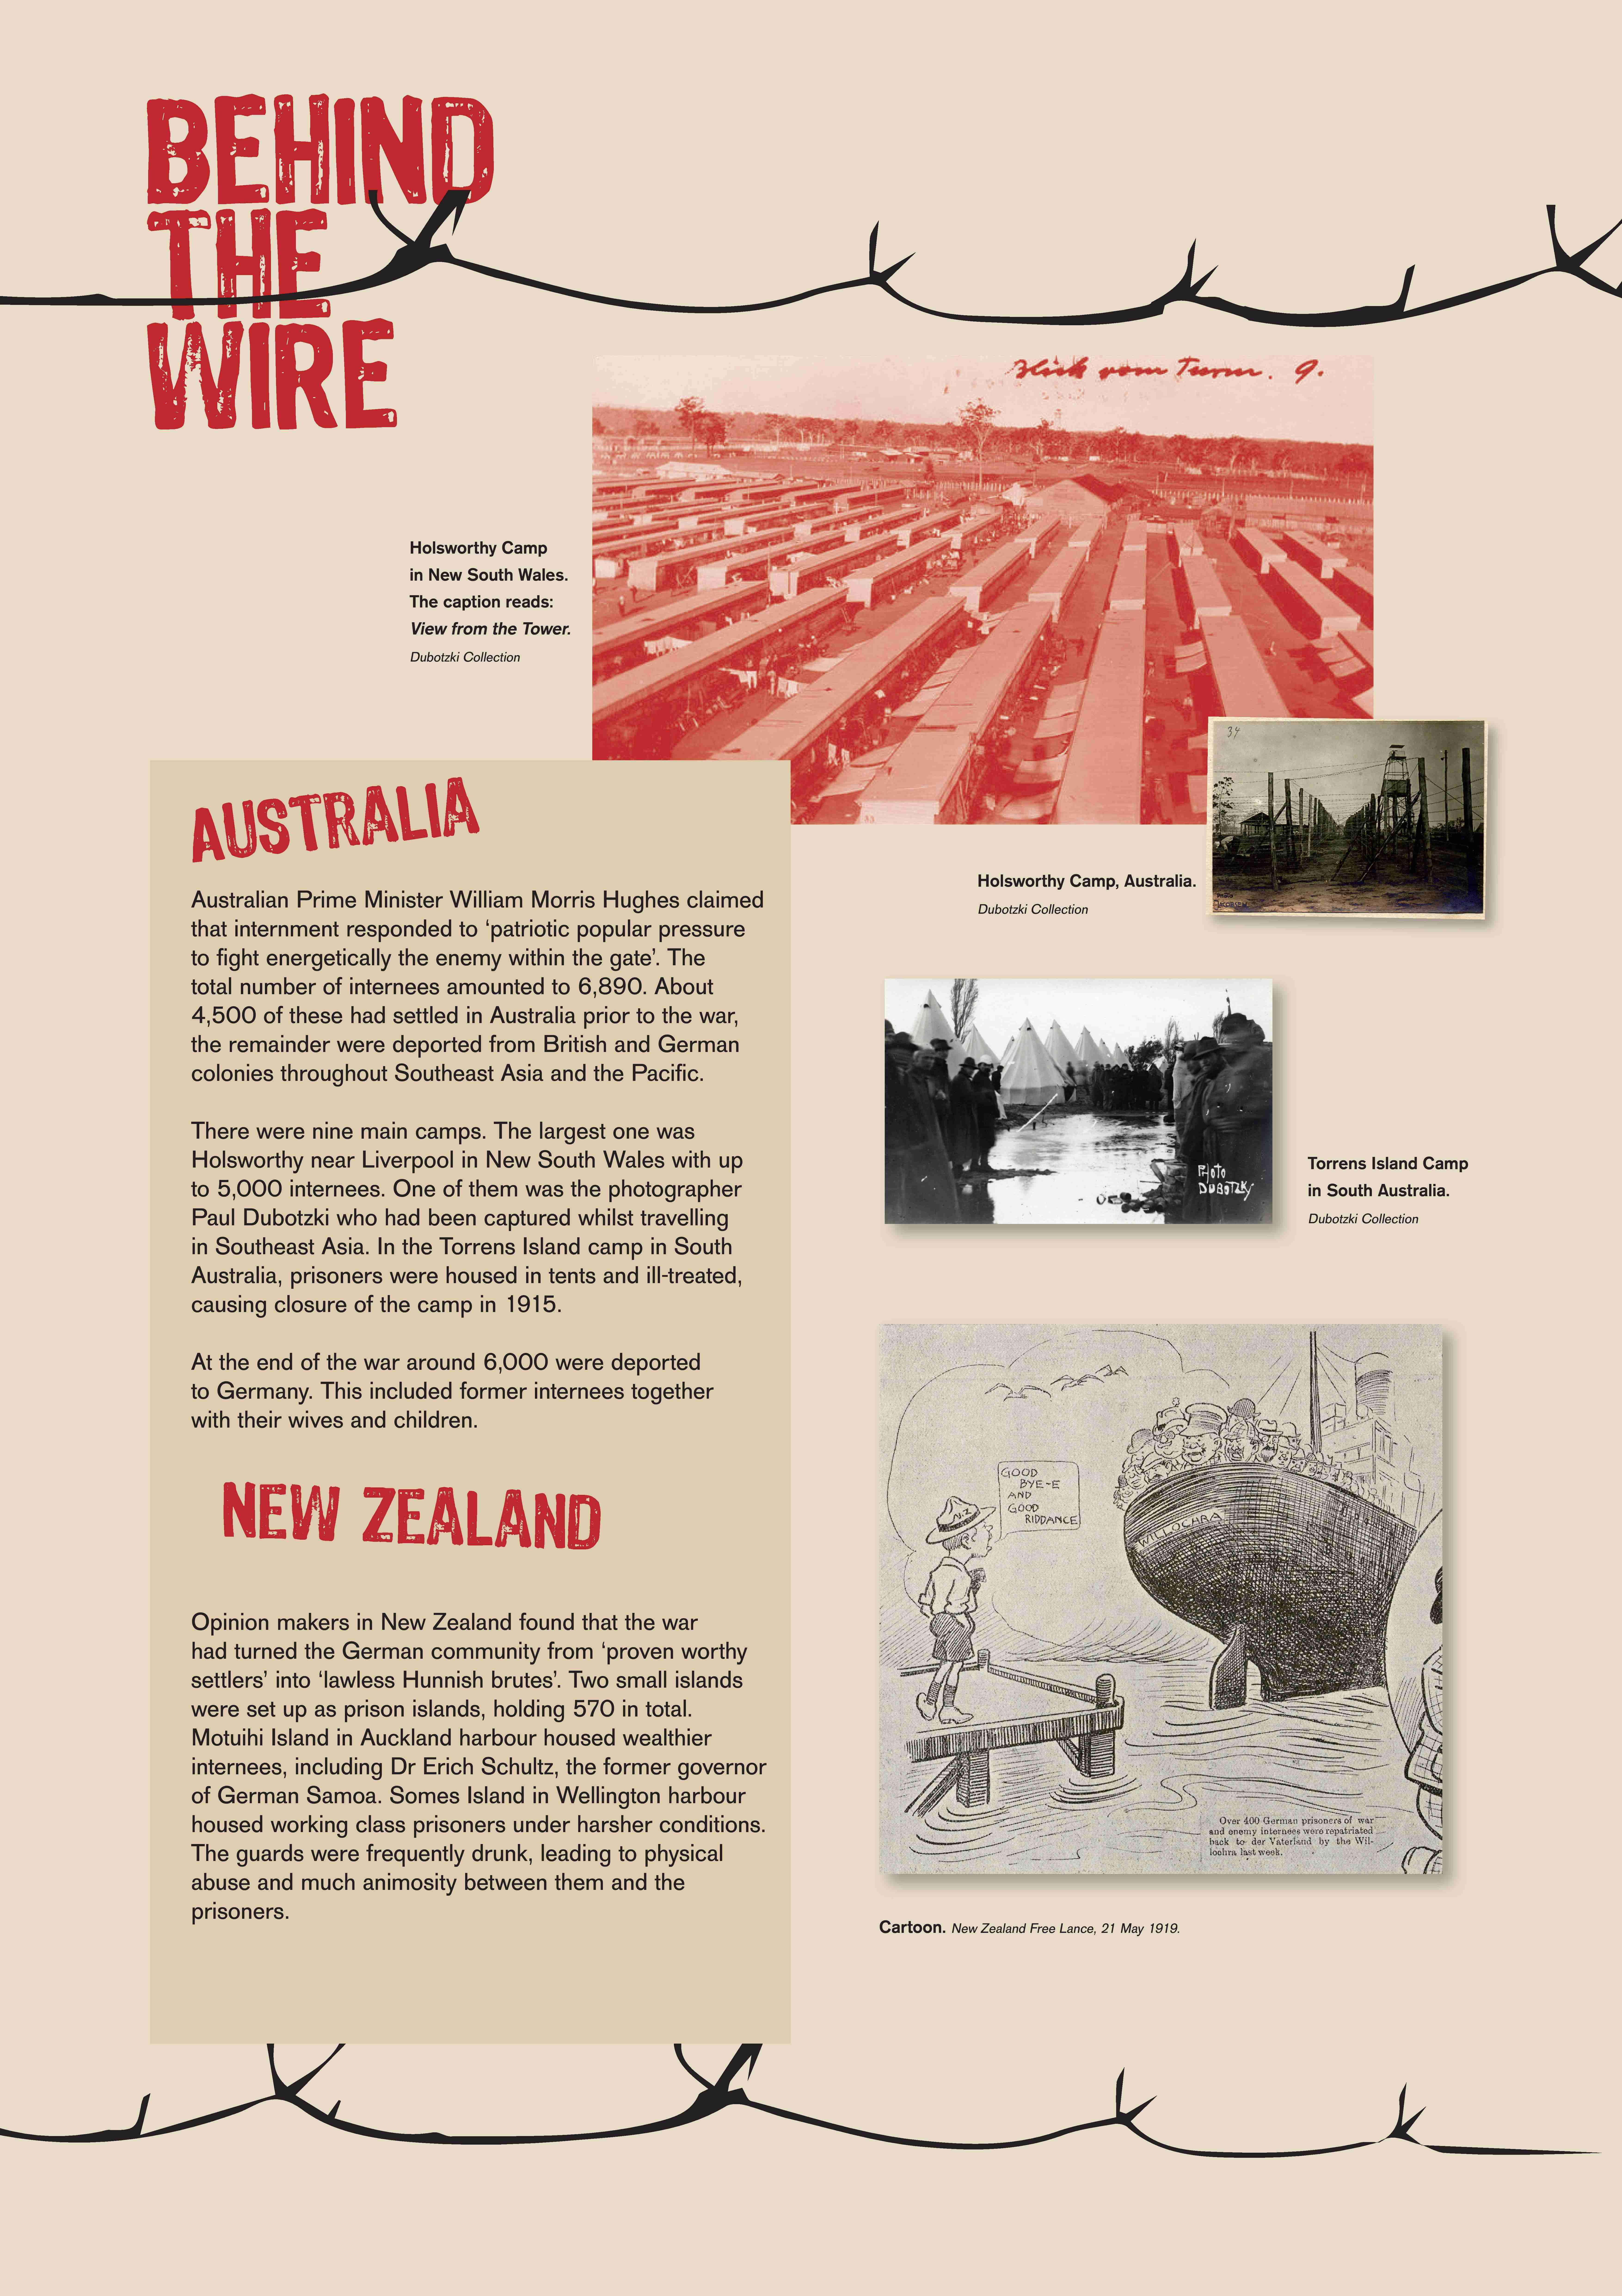 07-Behind the Wire-A1-Exhibition-Australia-New-Zealand_DIGITAL VERSION-page-001-min-compressed-compressed